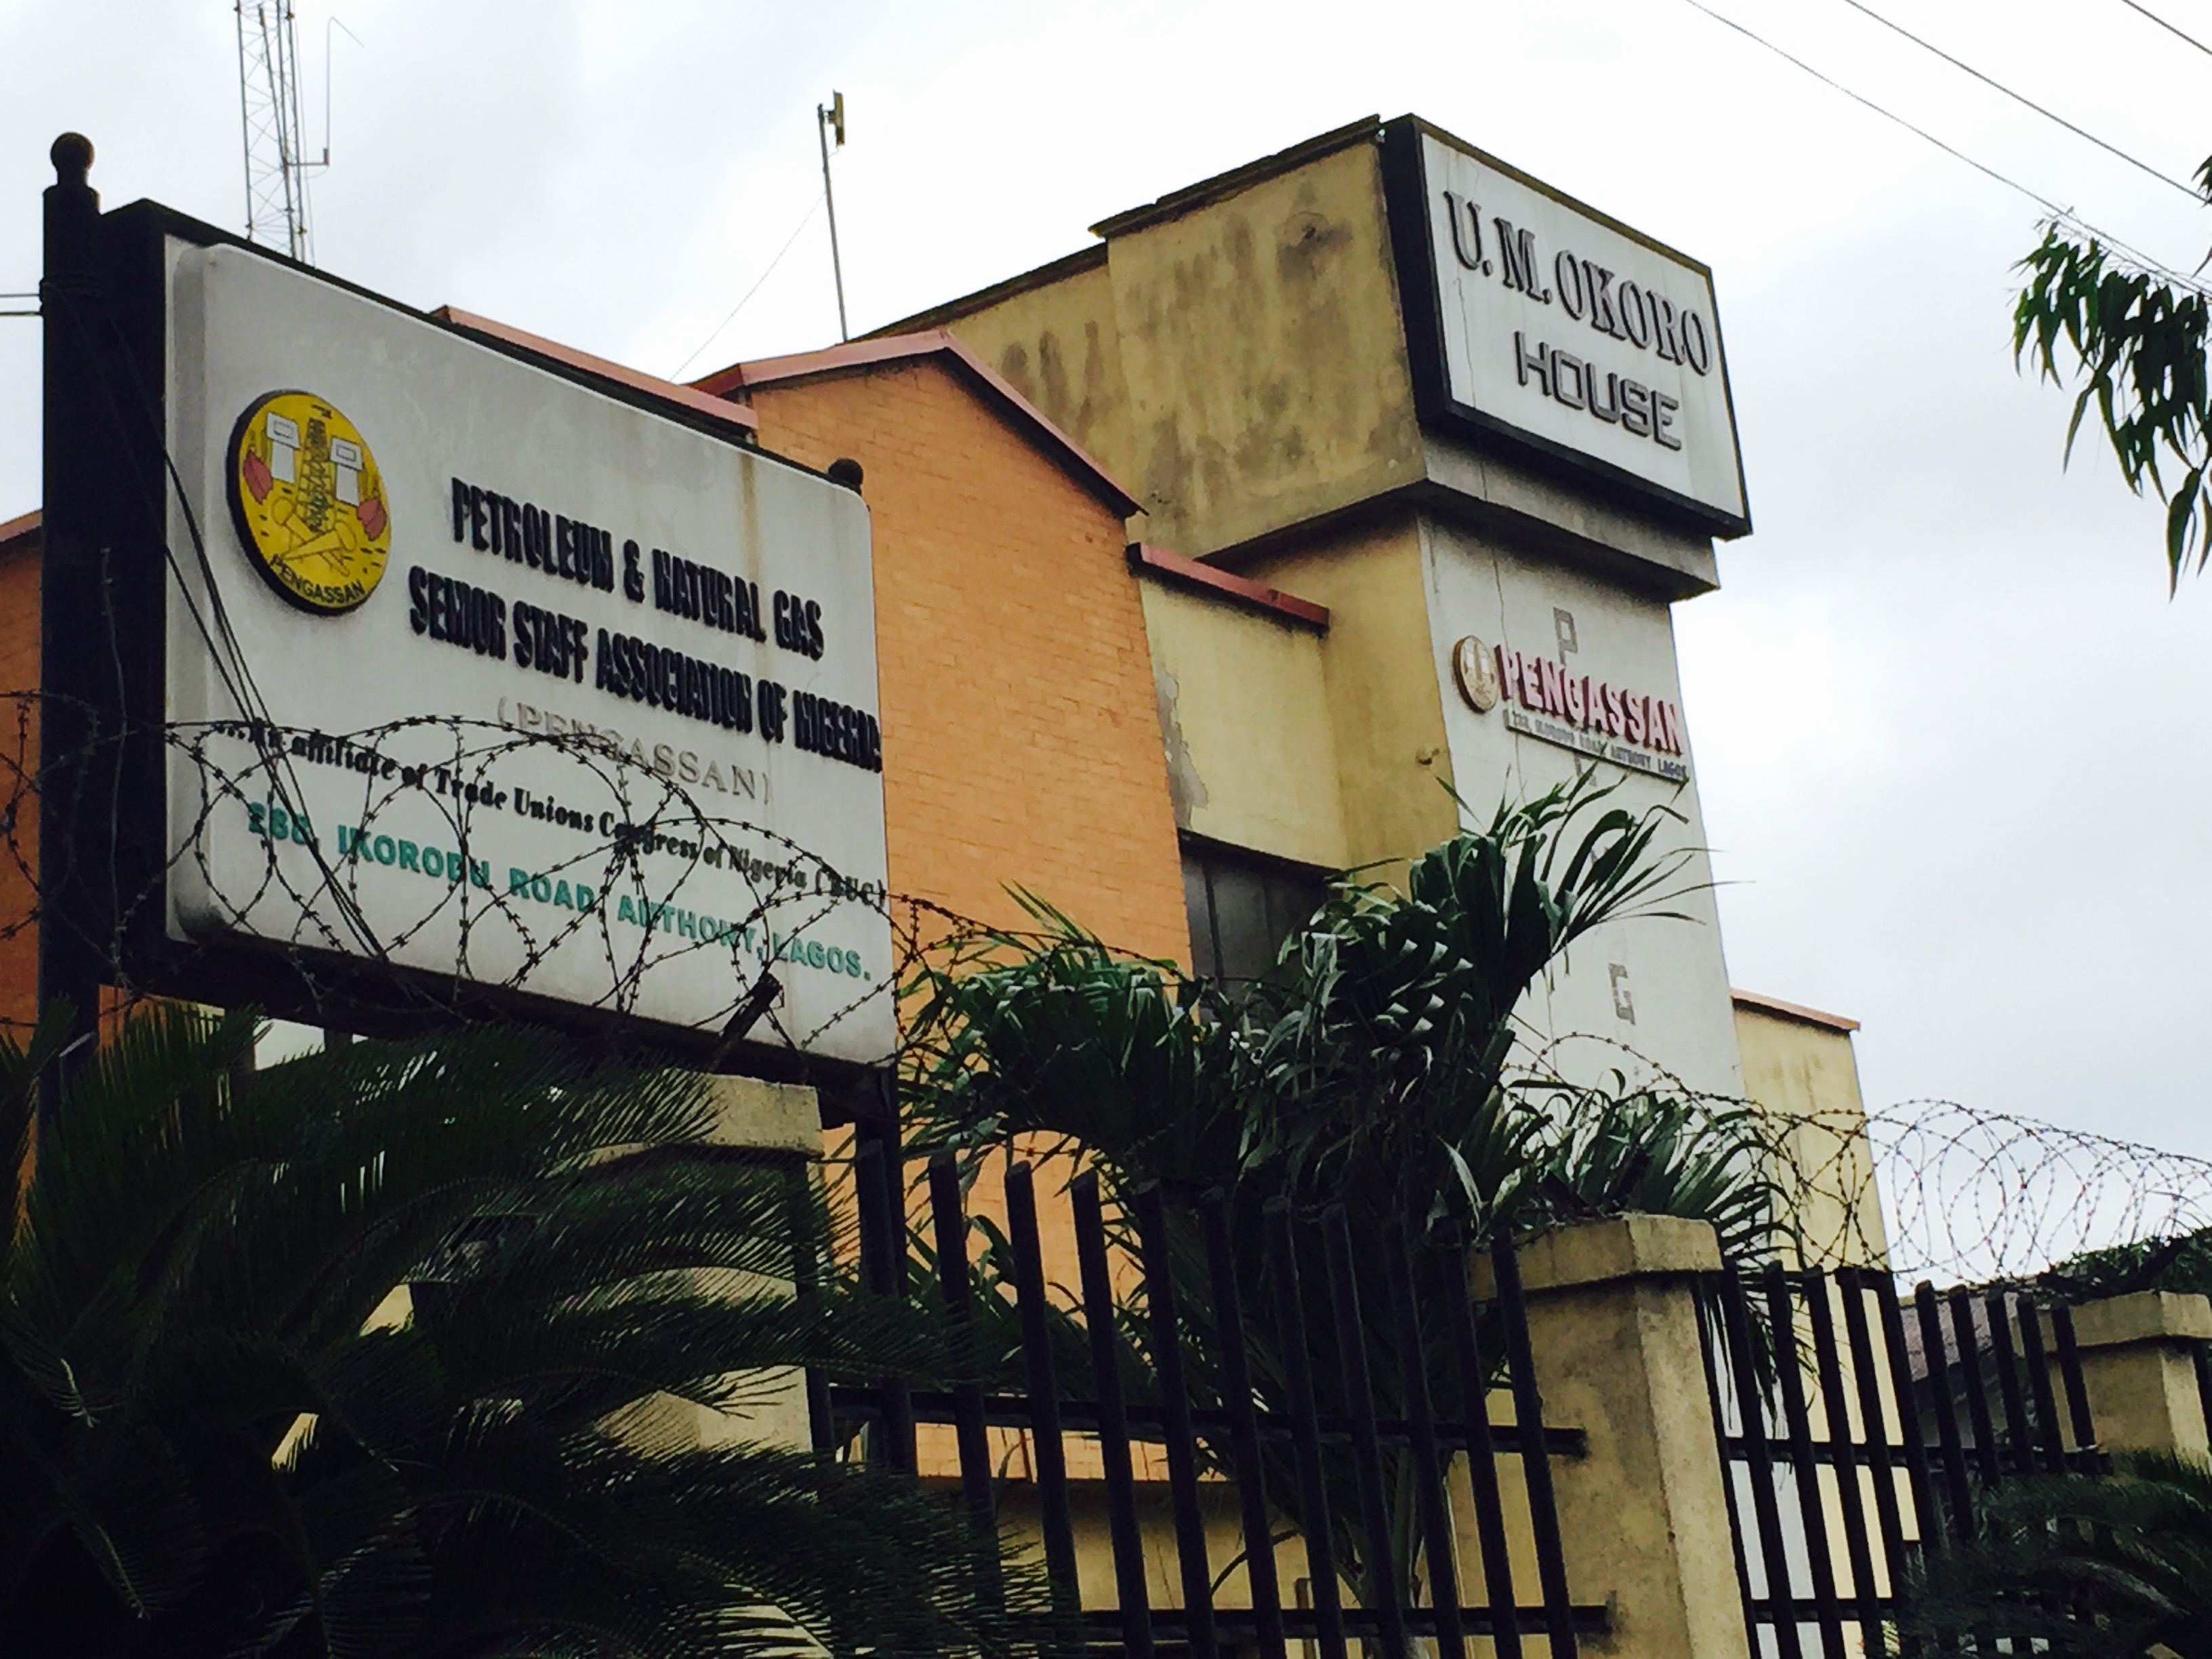 Nigerian oil and gas unions fight against precarious work | IndustriALL